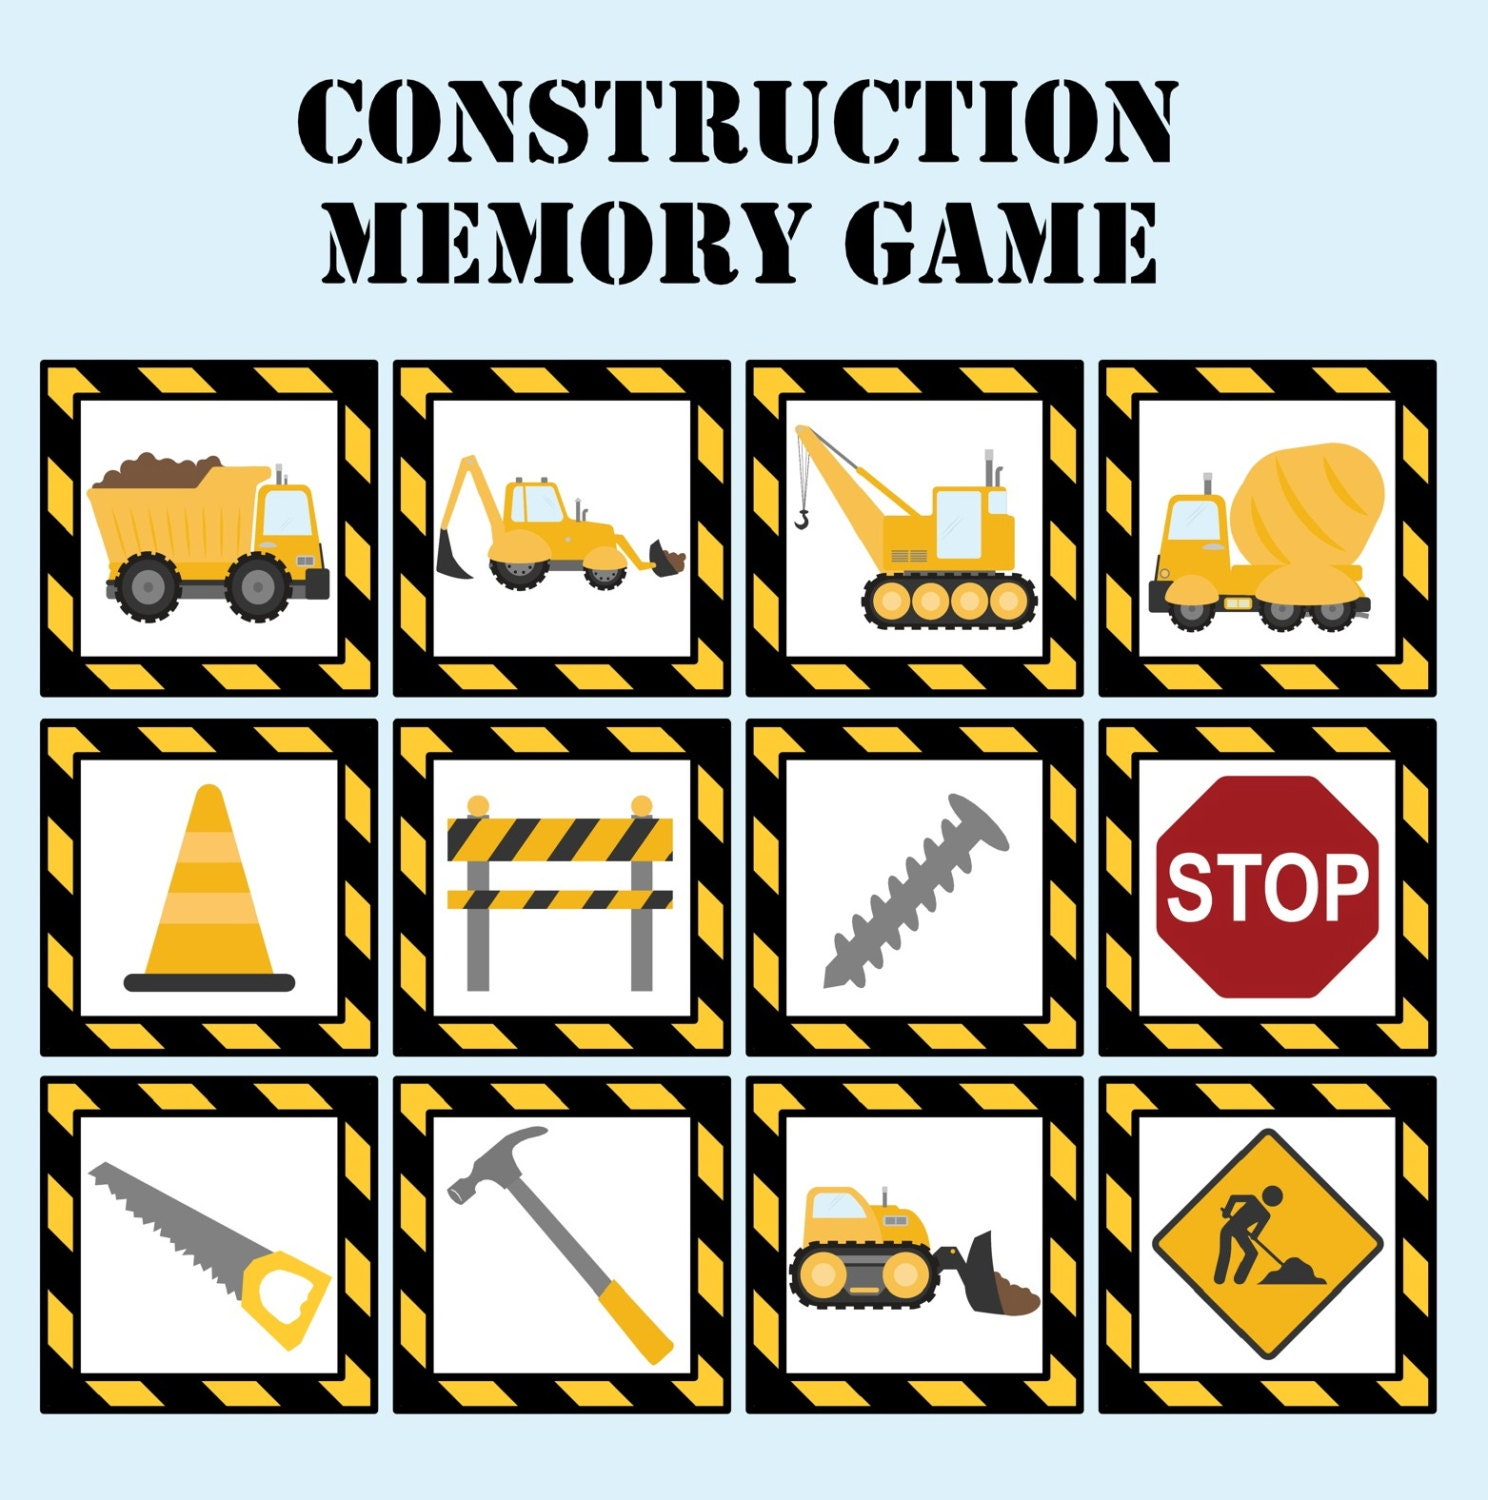 memory construction Memory part 6 - construction - duration: 16:19 krista meyers 1,089 views 16:19 memory construction - duration: 3:52 gibson smith 641 views 3:52.